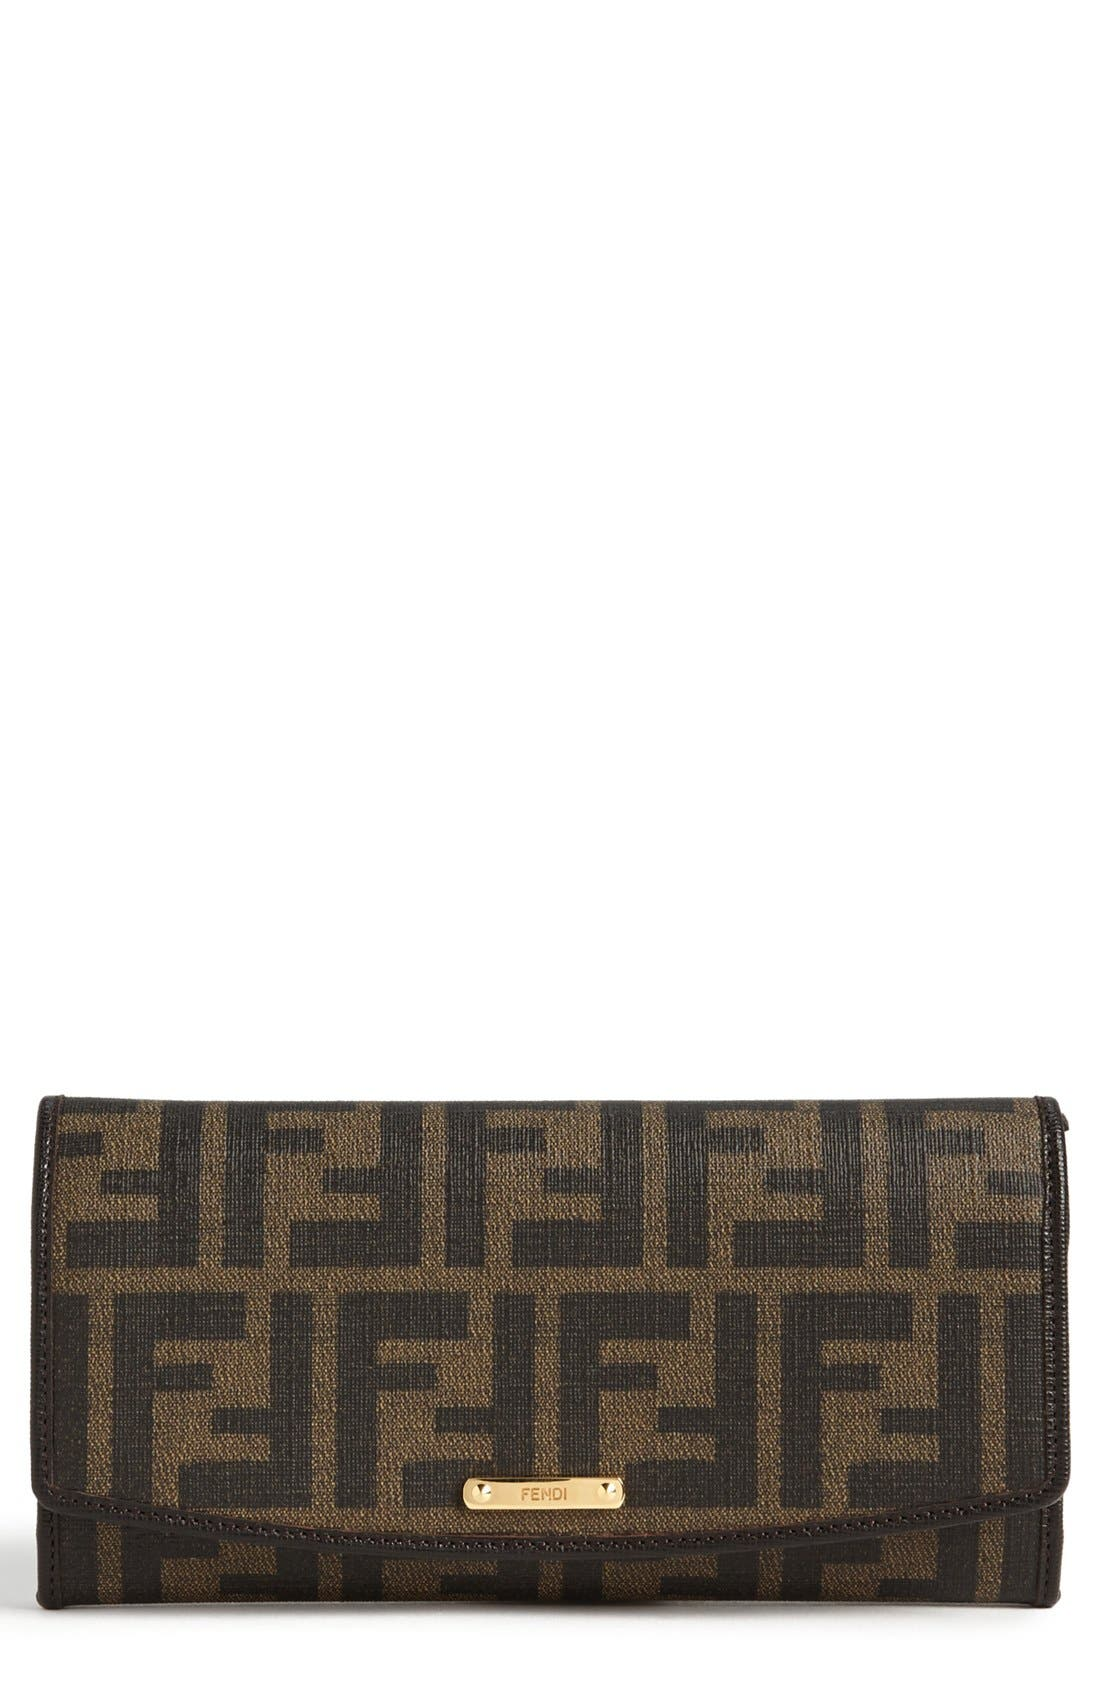 Alternate Image 1 Selected - Fendi 'Zucca' Continental Wallet